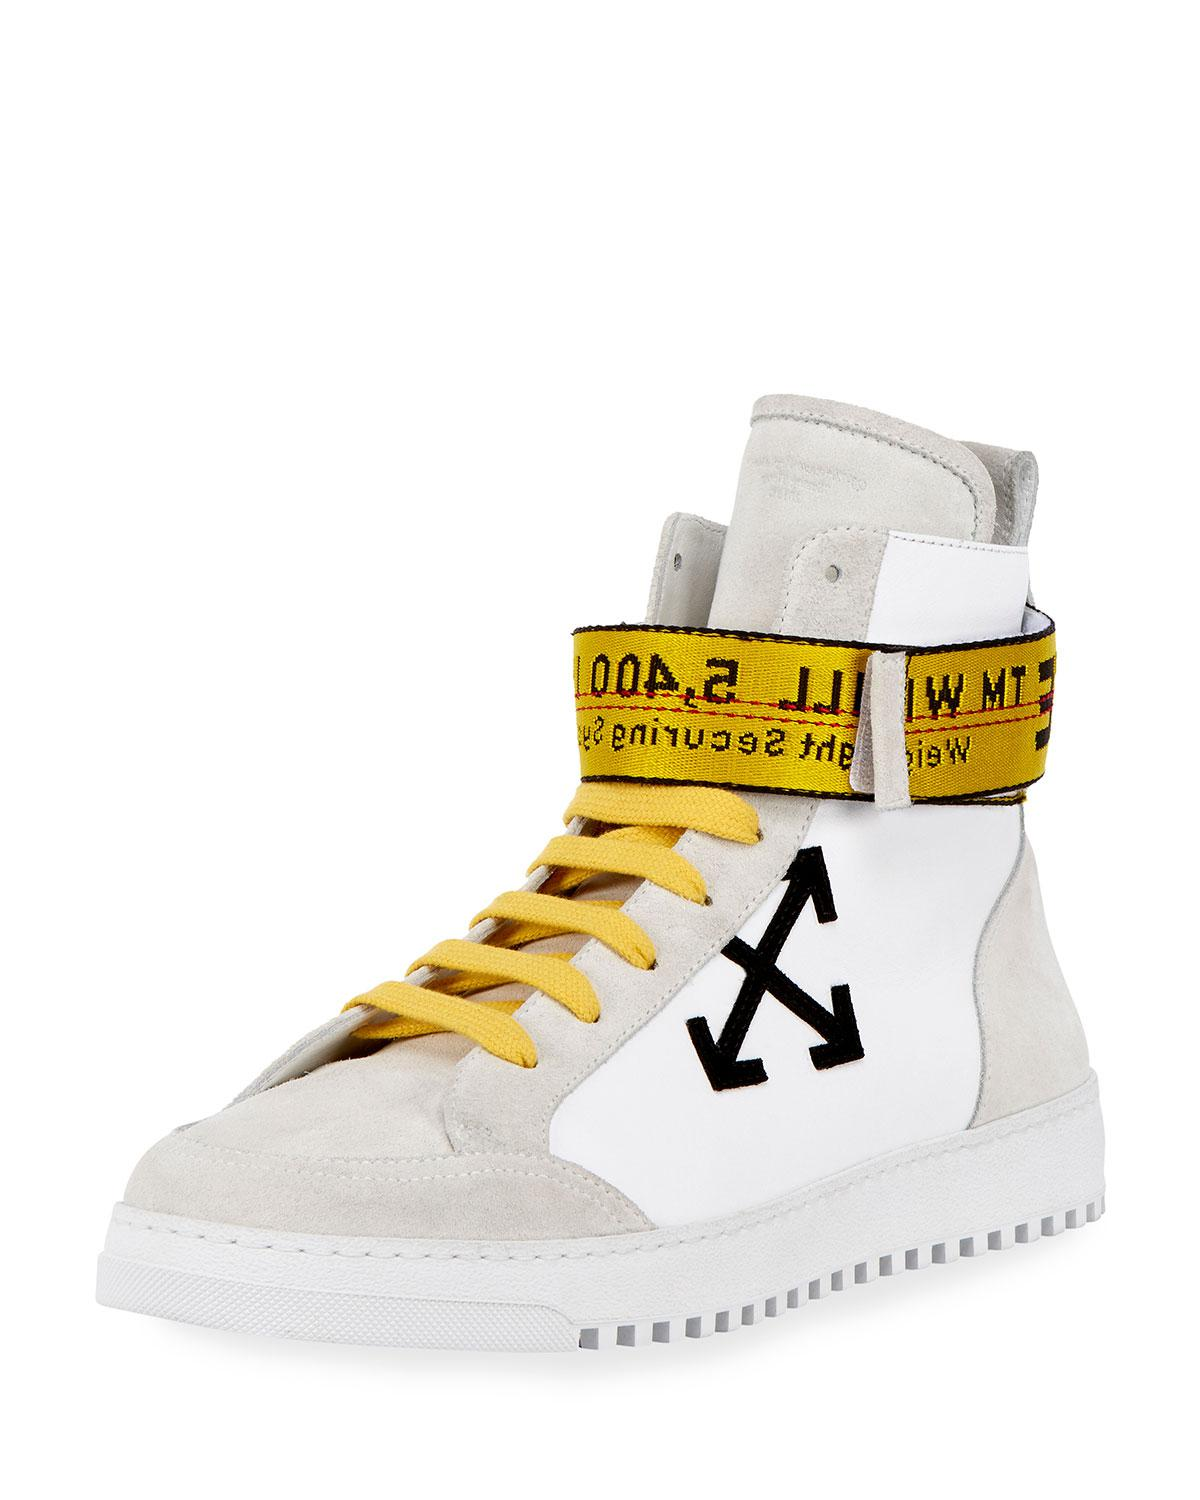 6ec866412d447f Lyst - Off-White c o Virgil Abloh Men s Suede   Leather High-top ...